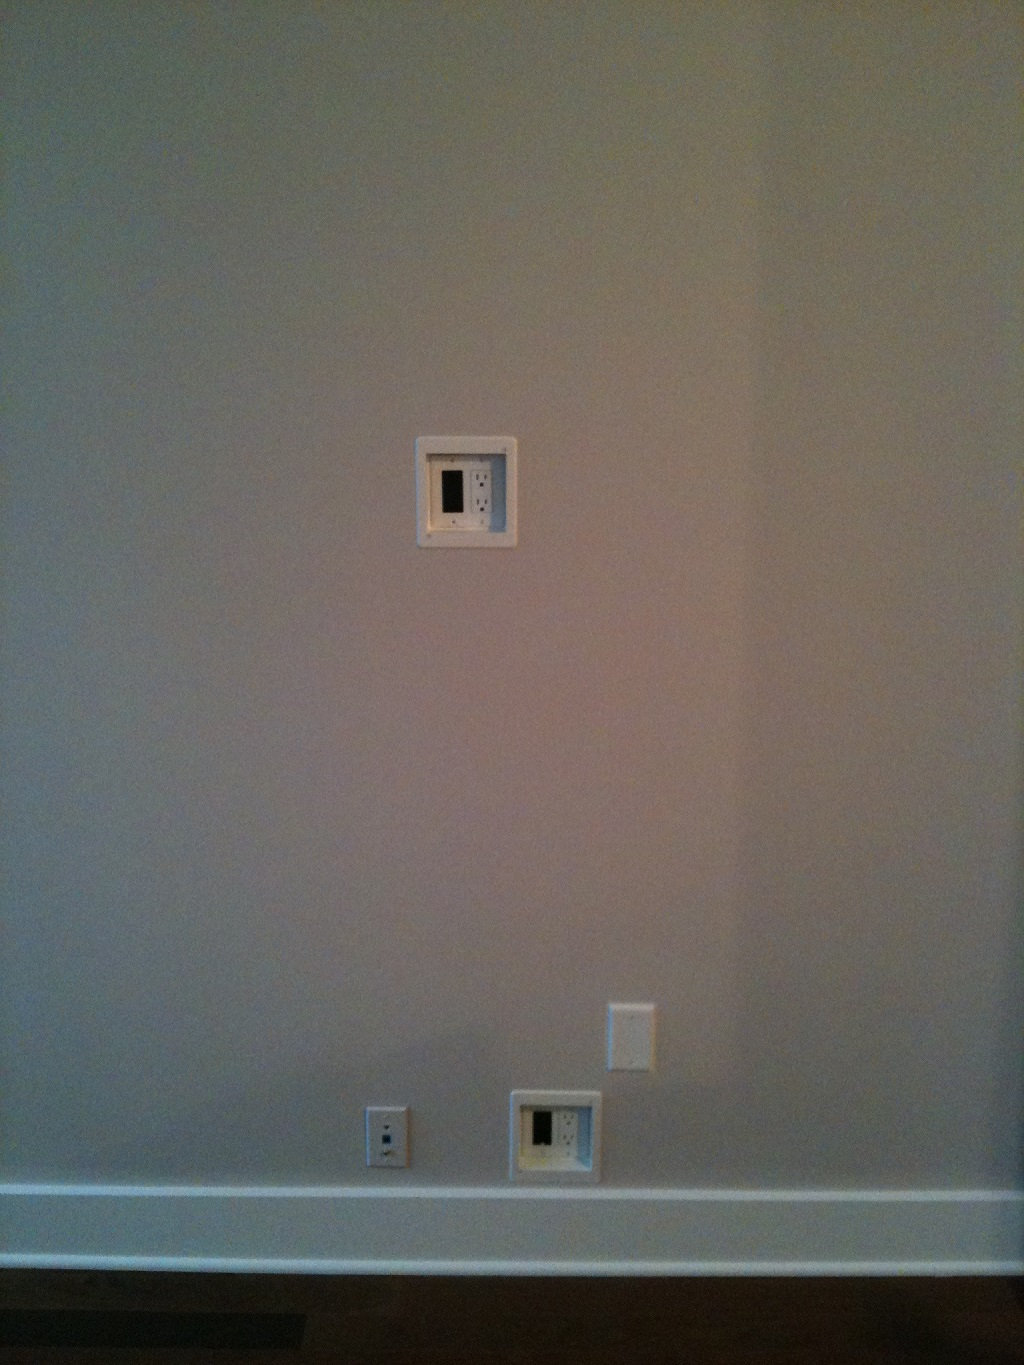 Tv Installations Central Nj Westfieldscotch Plains Room To House Wiring